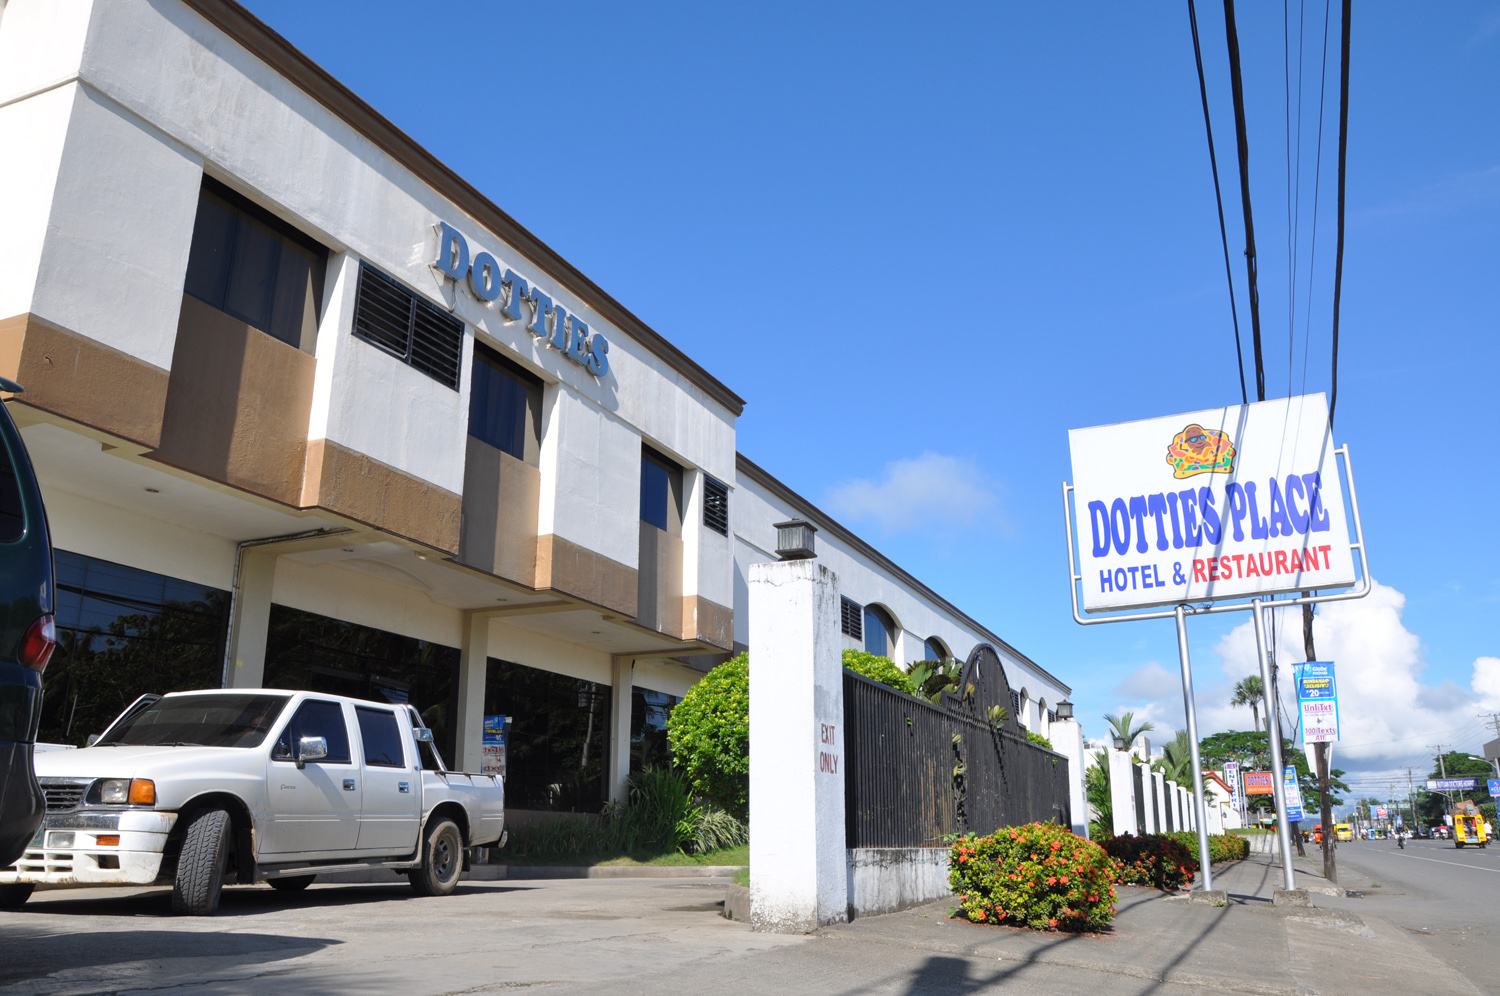 Dotties Place Hotel And Restaurant Philippines Tour Guide